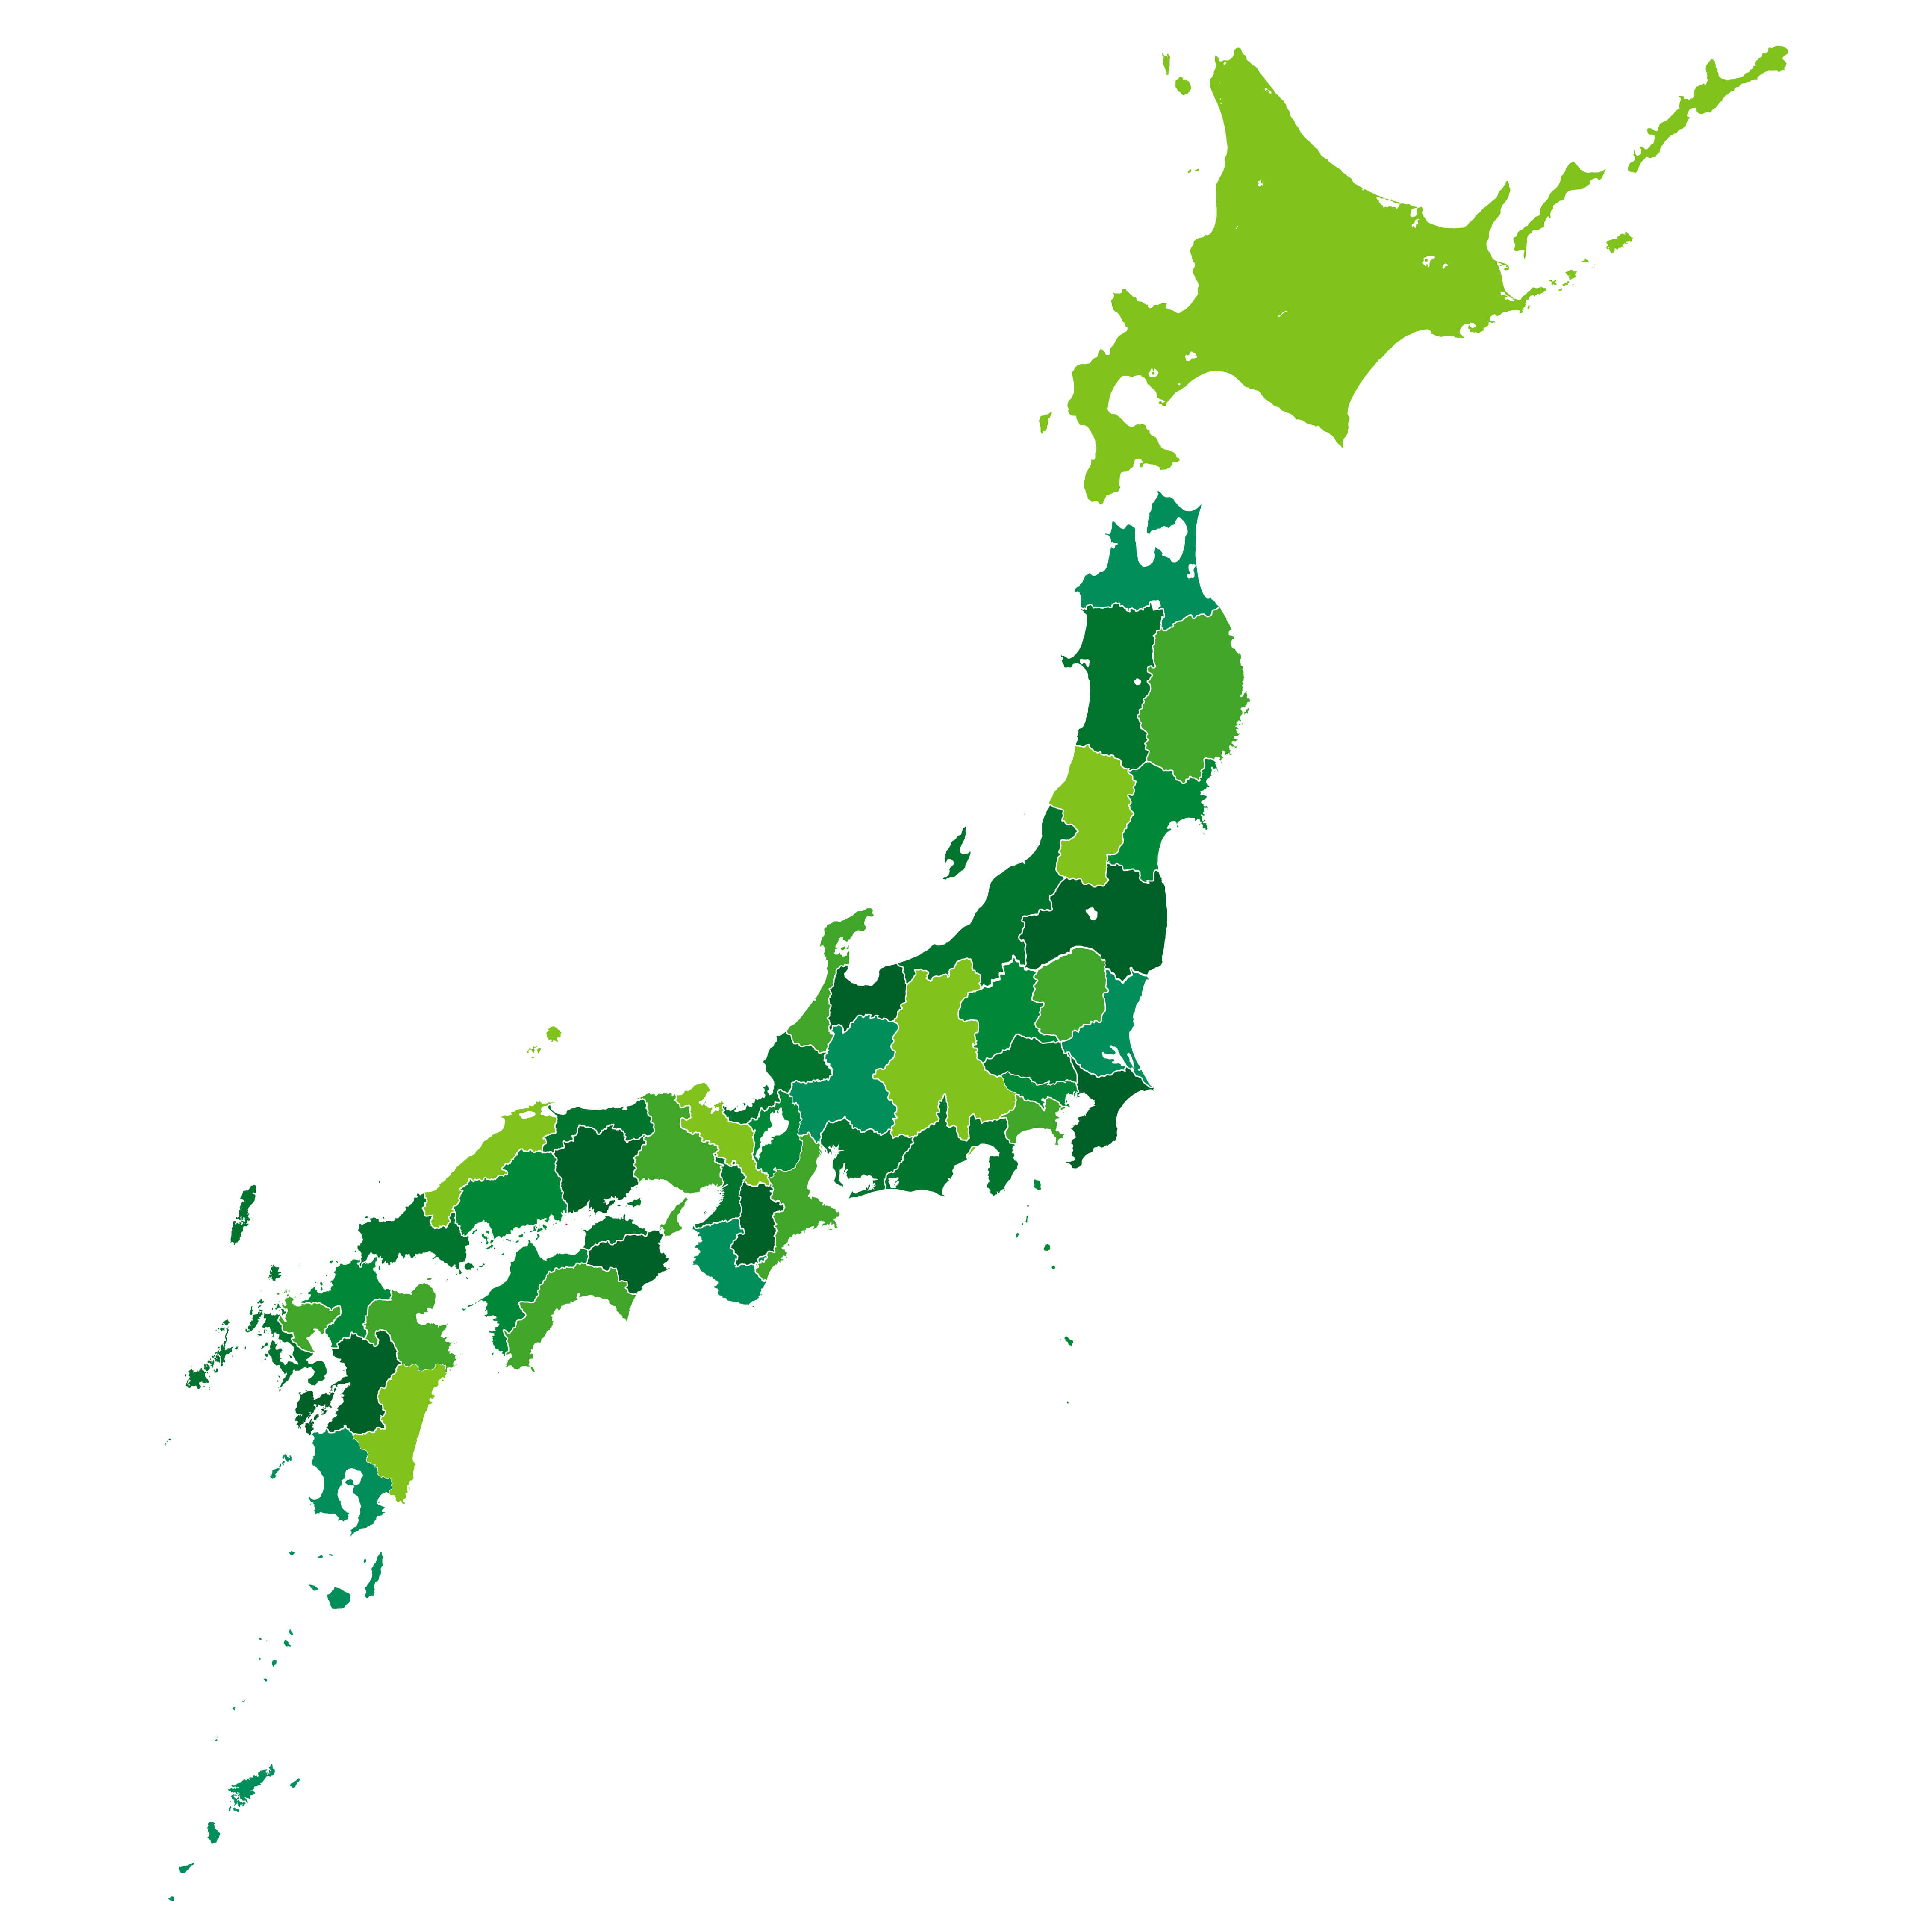 Japan Colorful Blank Map